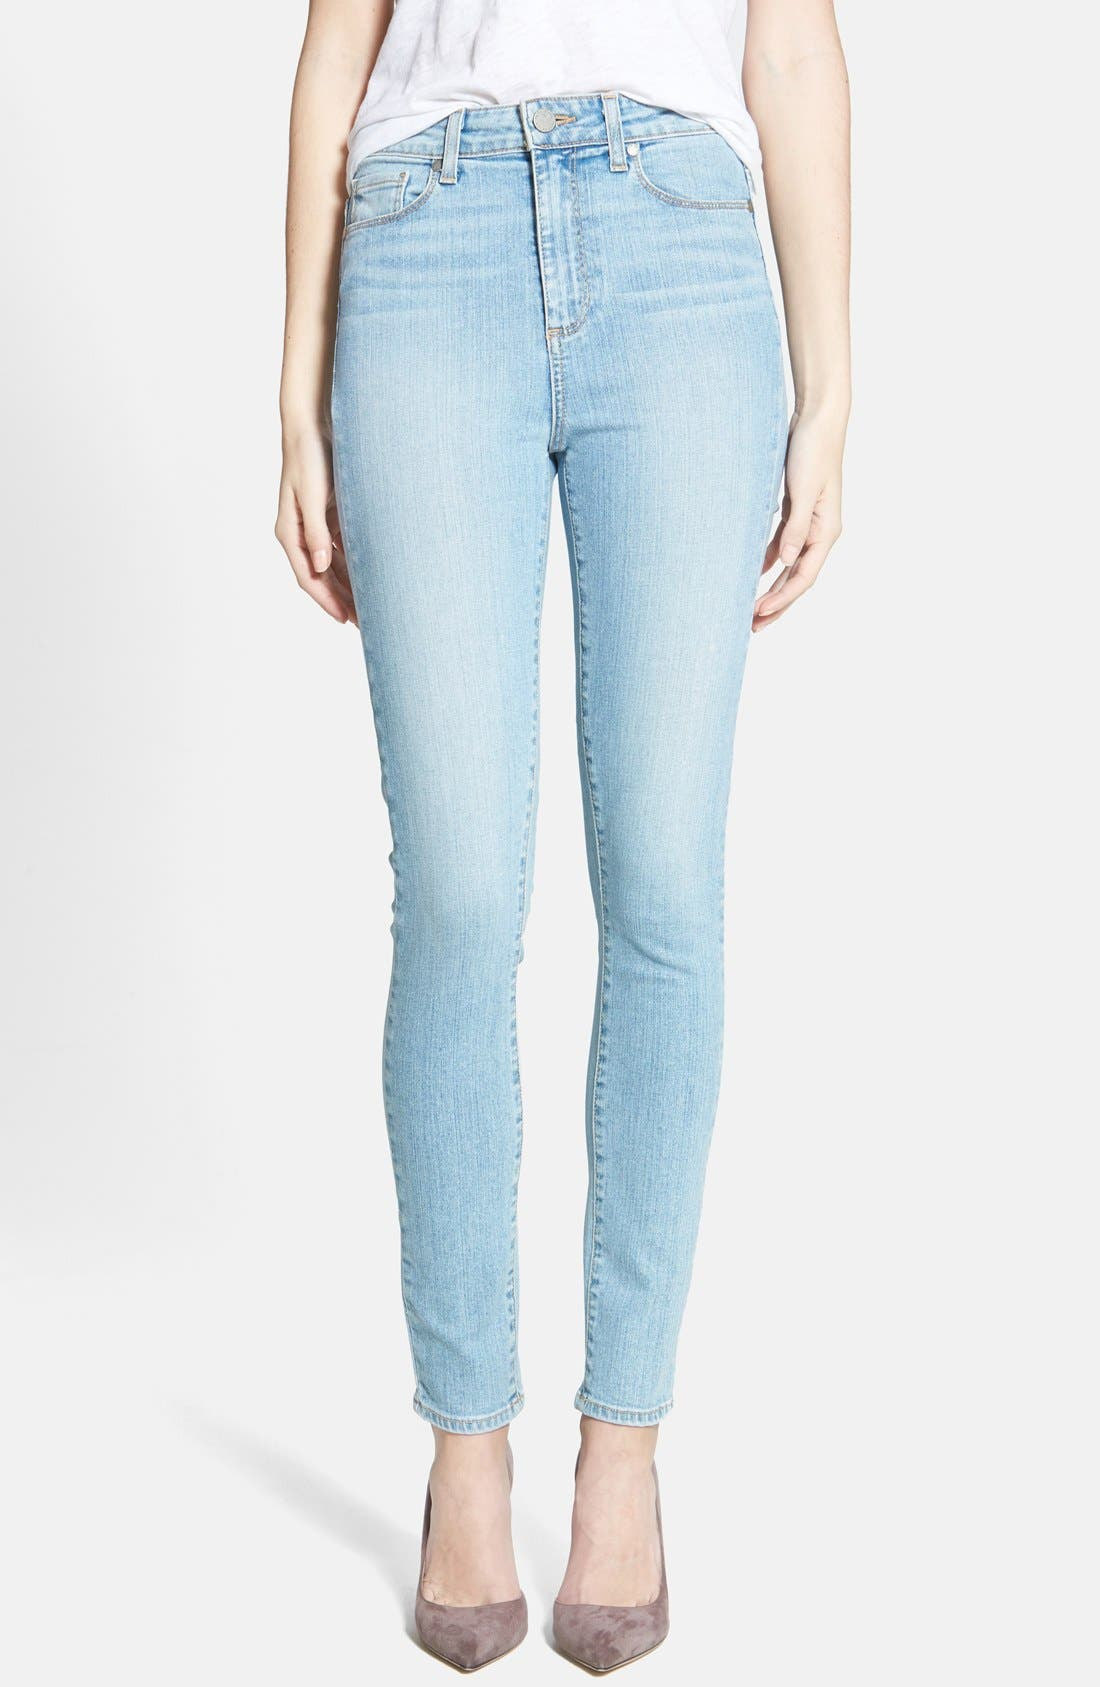 Alternate Image 1 Selected - Paige Denim 'Margot' Ultra Skinny Jeans (Loren Blue)